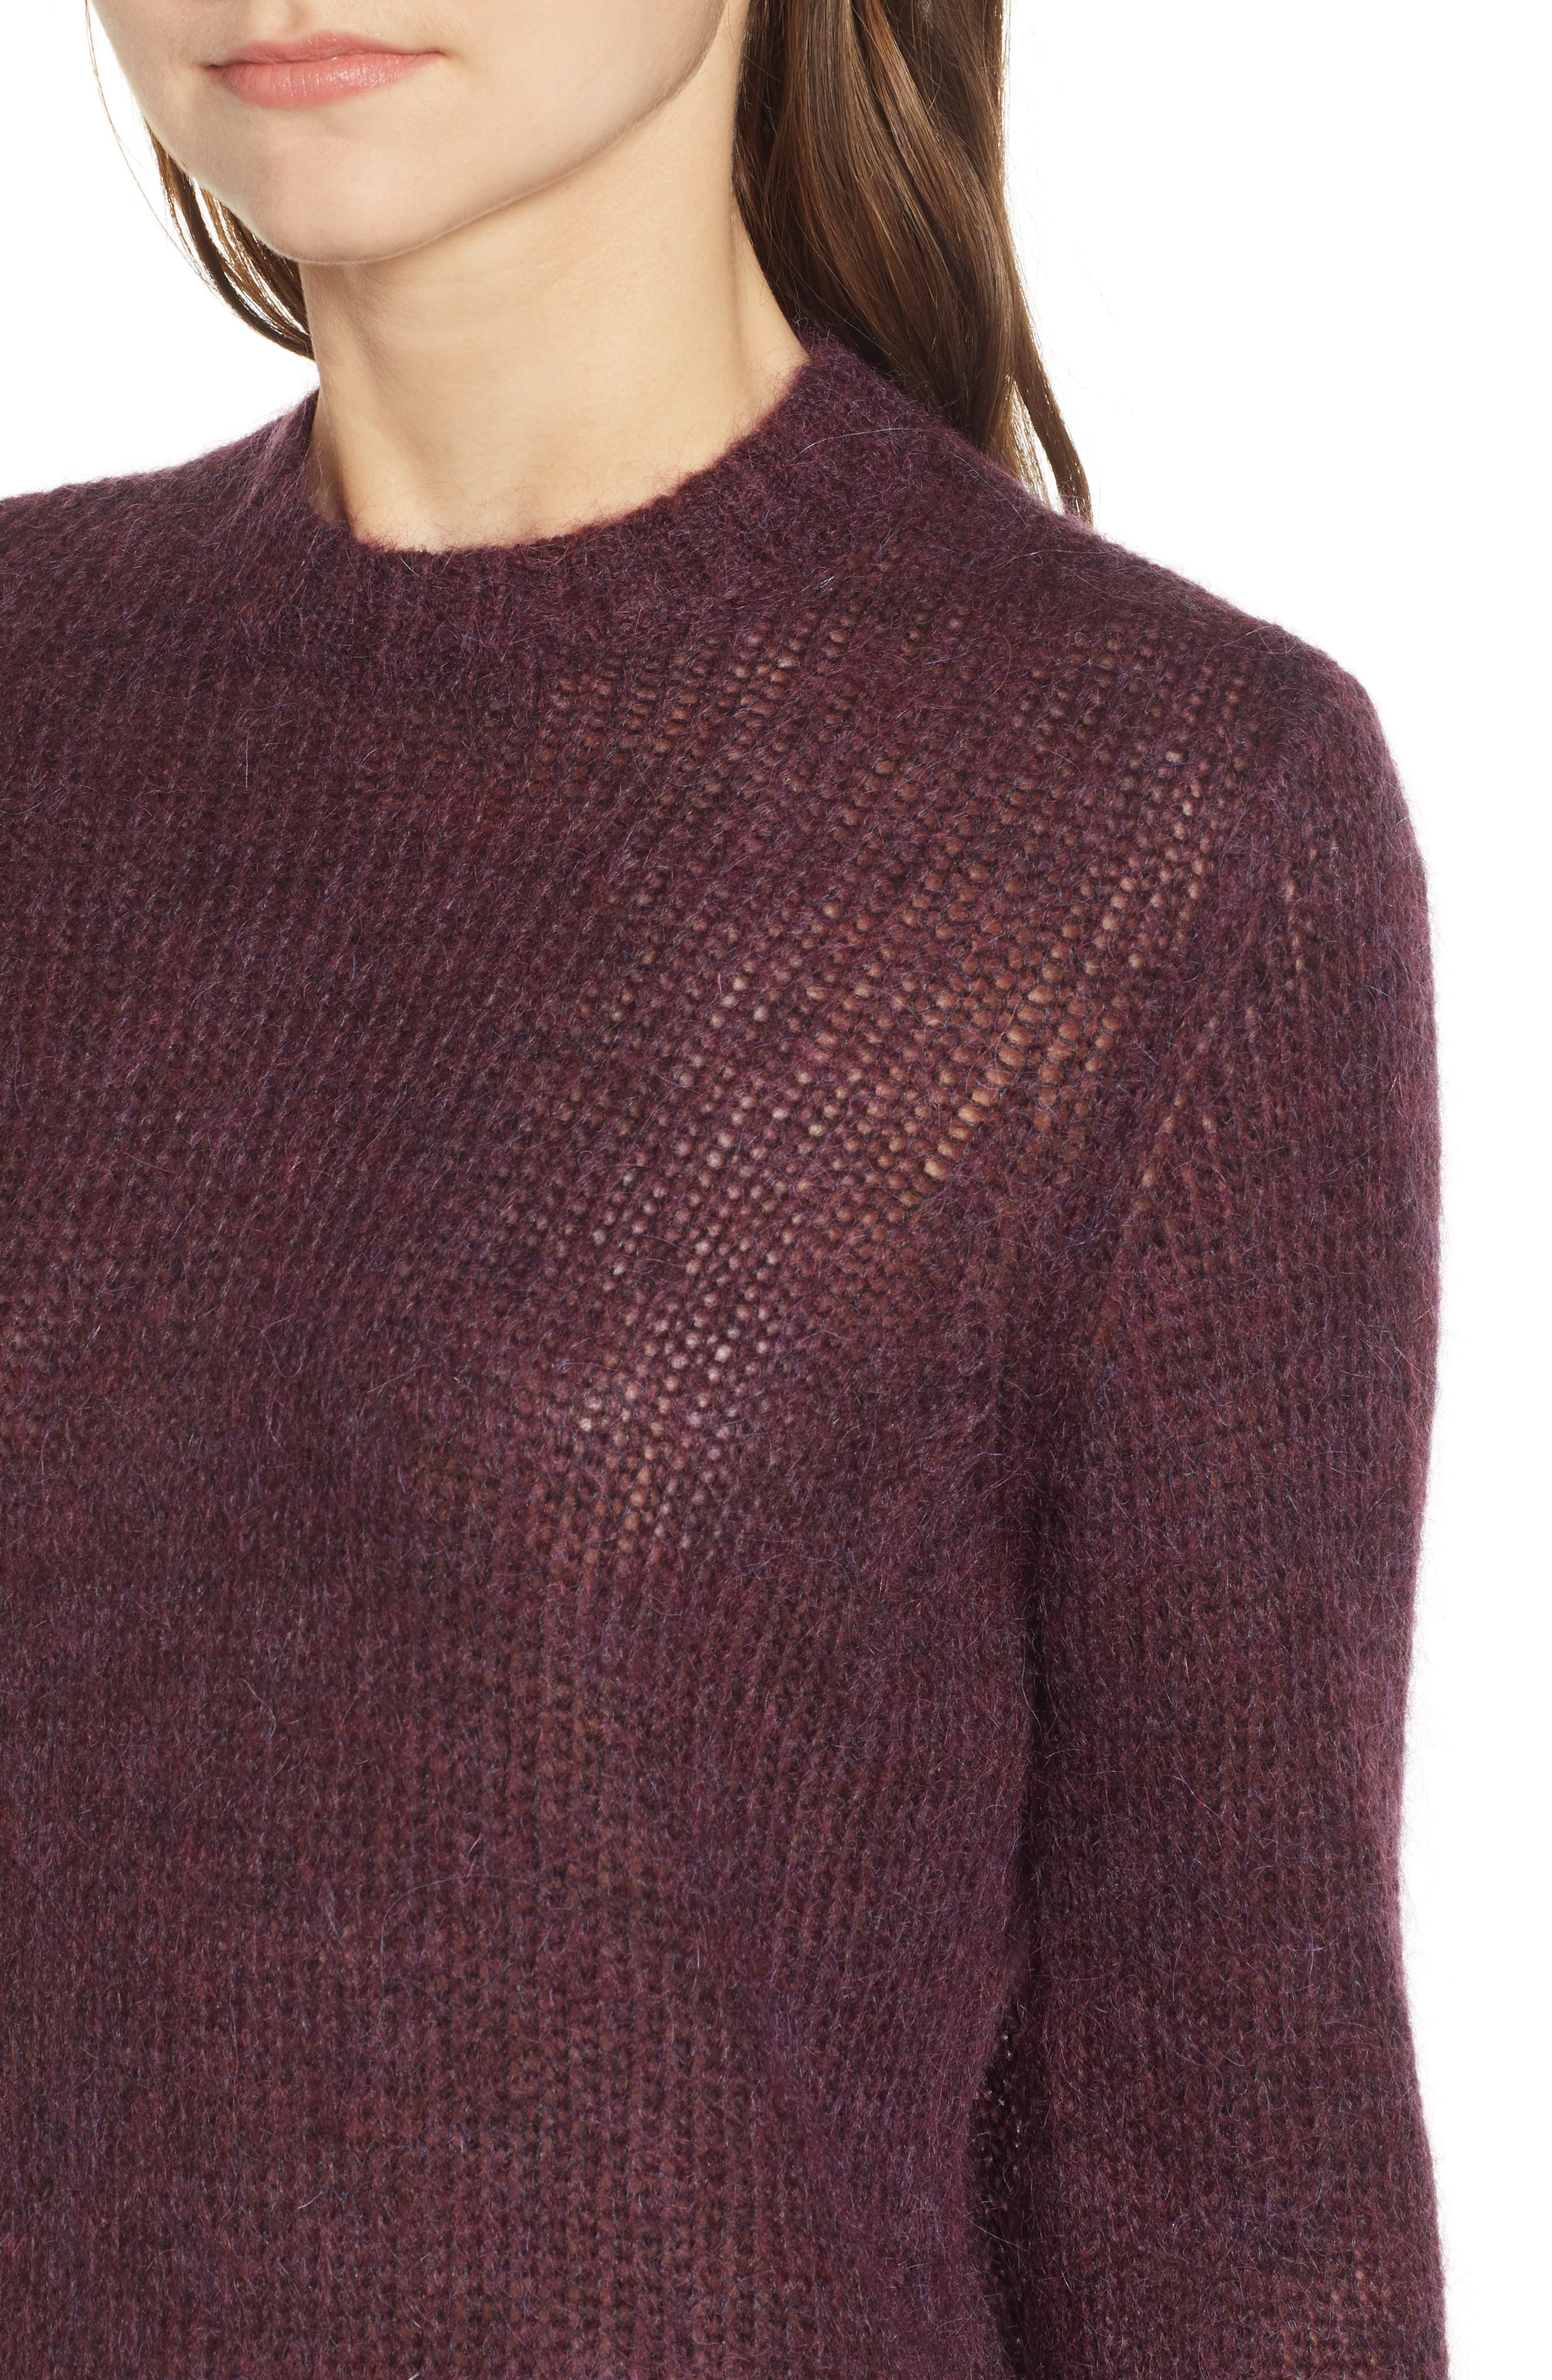 Ansley Crewneck Sweater,                             Alternate thumbnail 4, color,                             RICH CARMINE